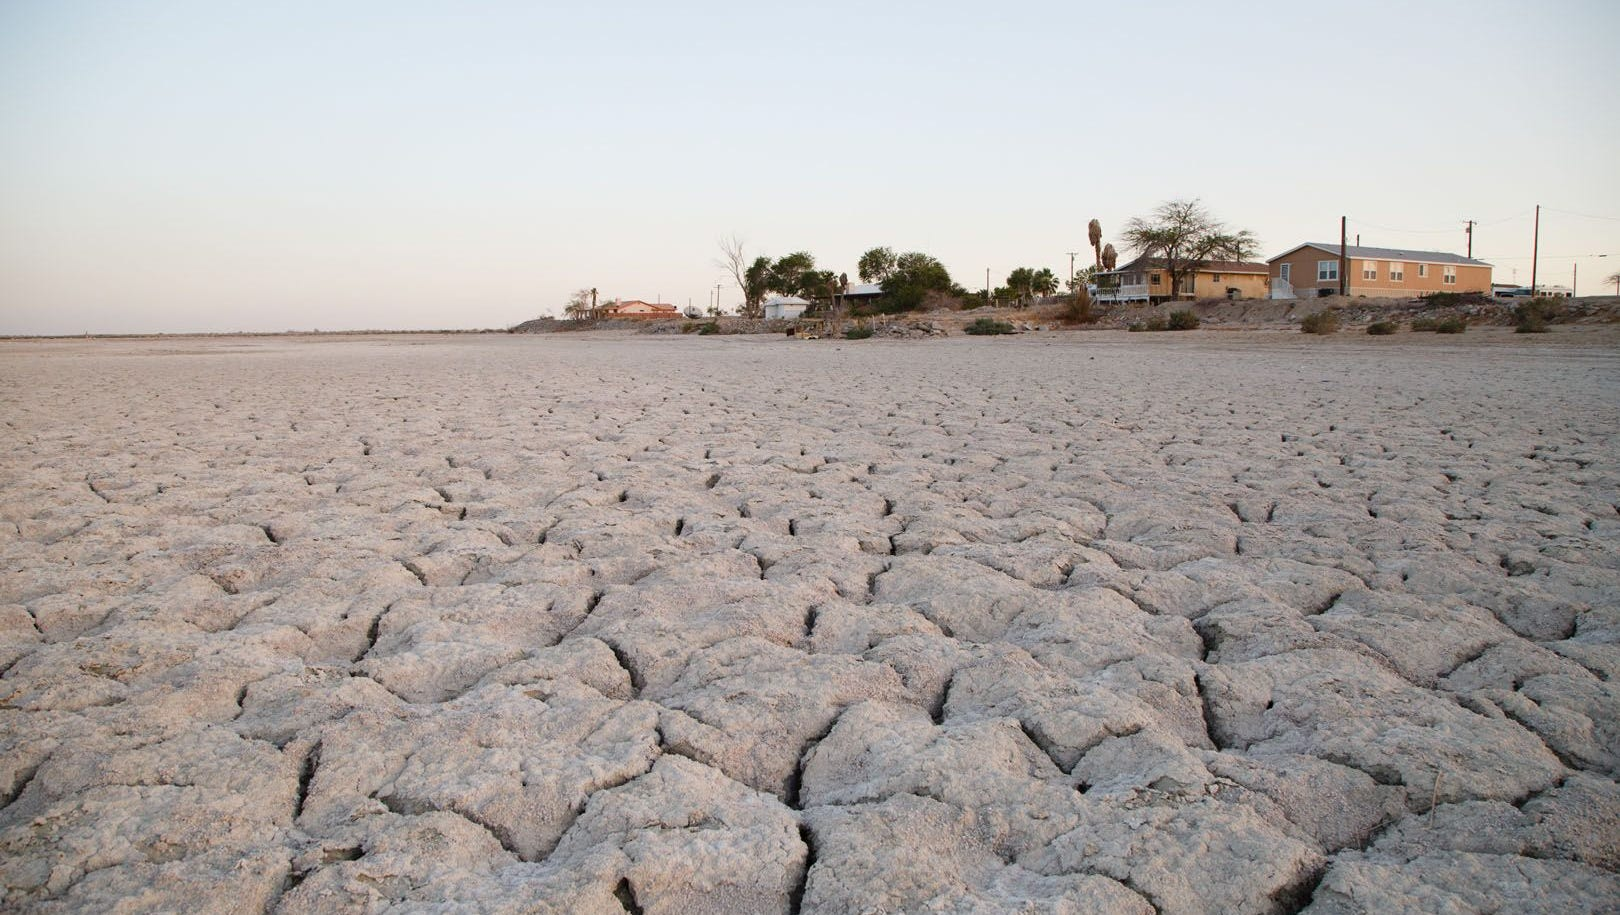 Bond proposal: $280M for Salton Sea in proposed bond measure